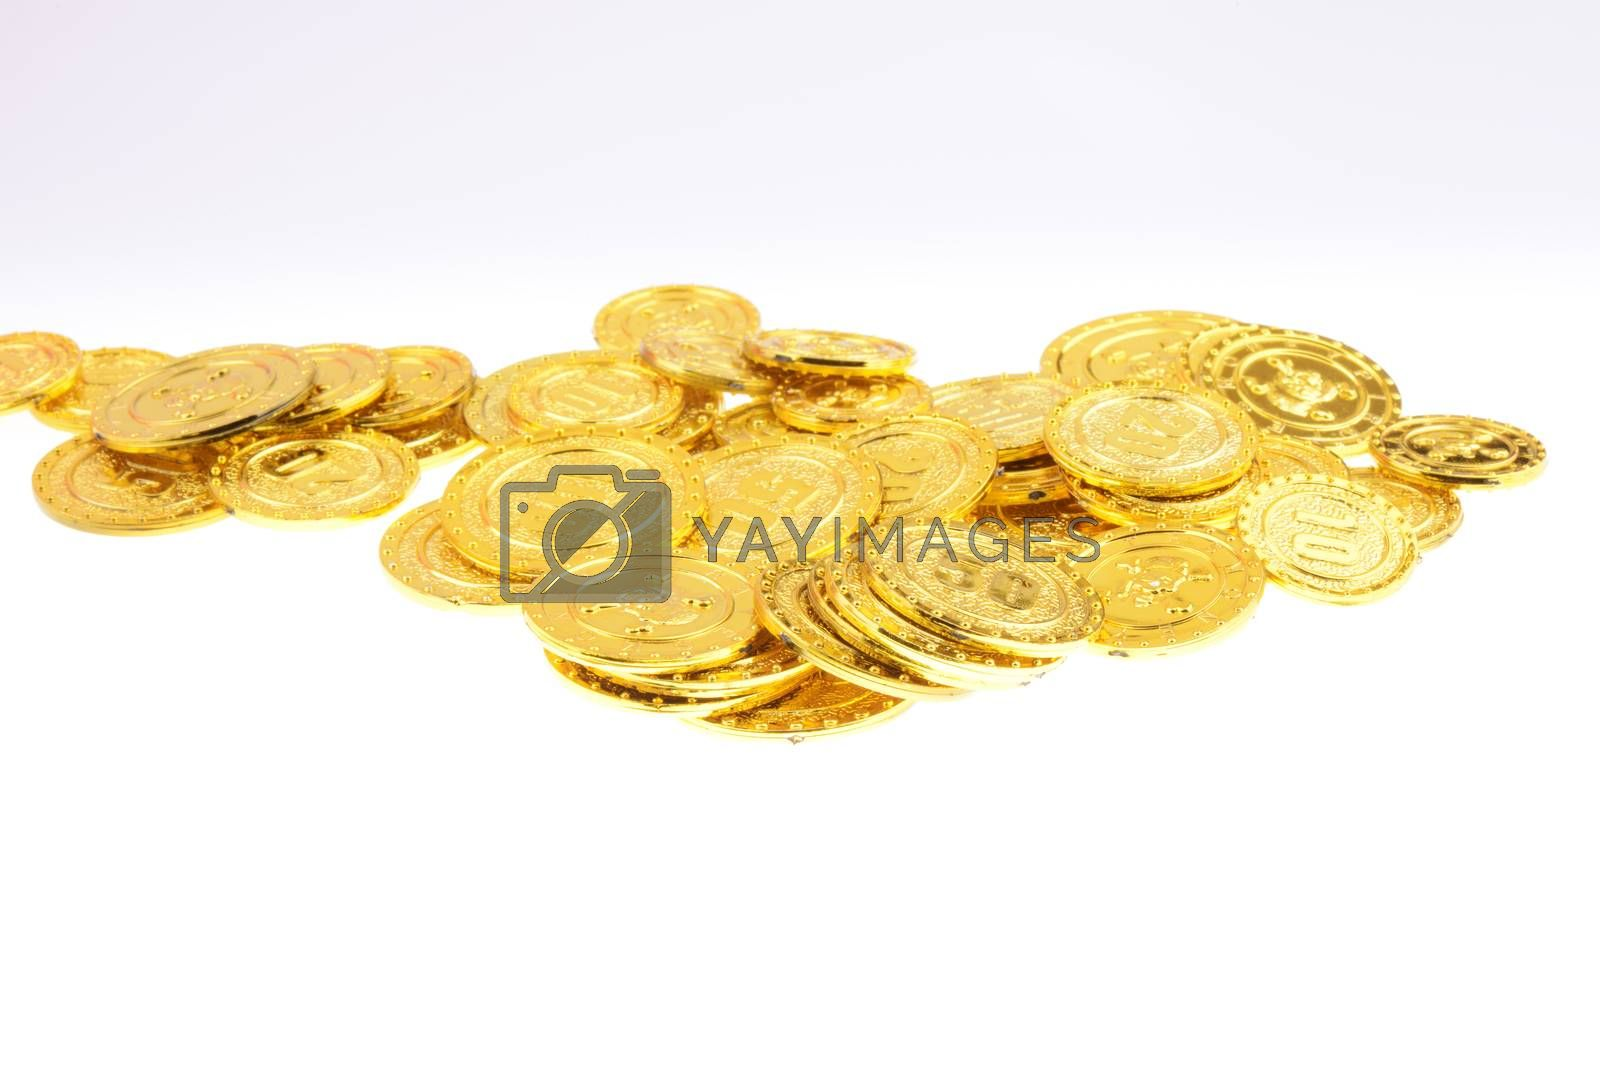 Pile of gold coins on a white background